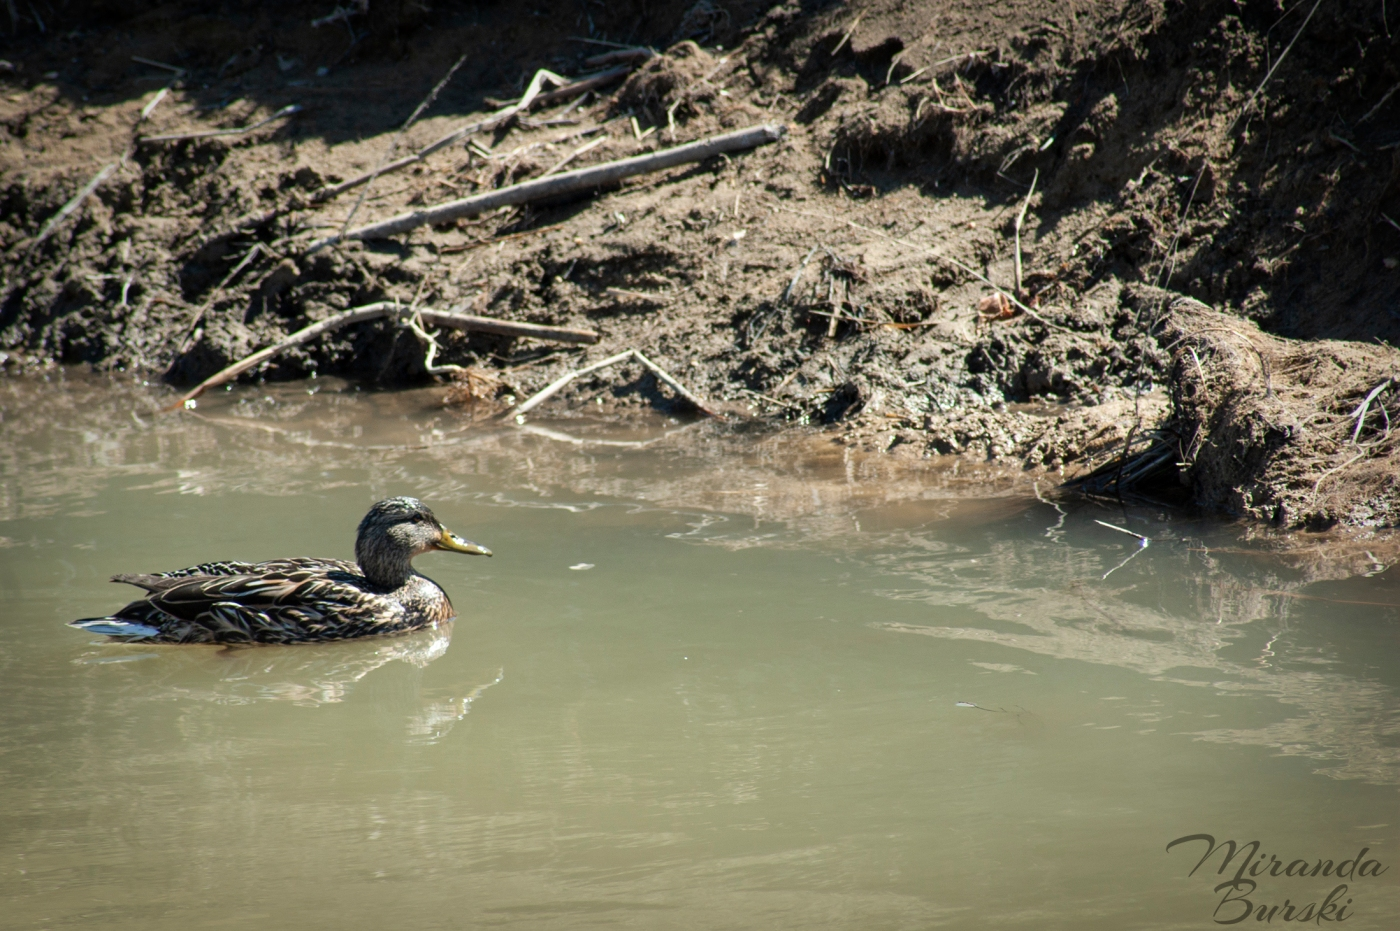 A brown mallard swimming on water, with the shore in the background.